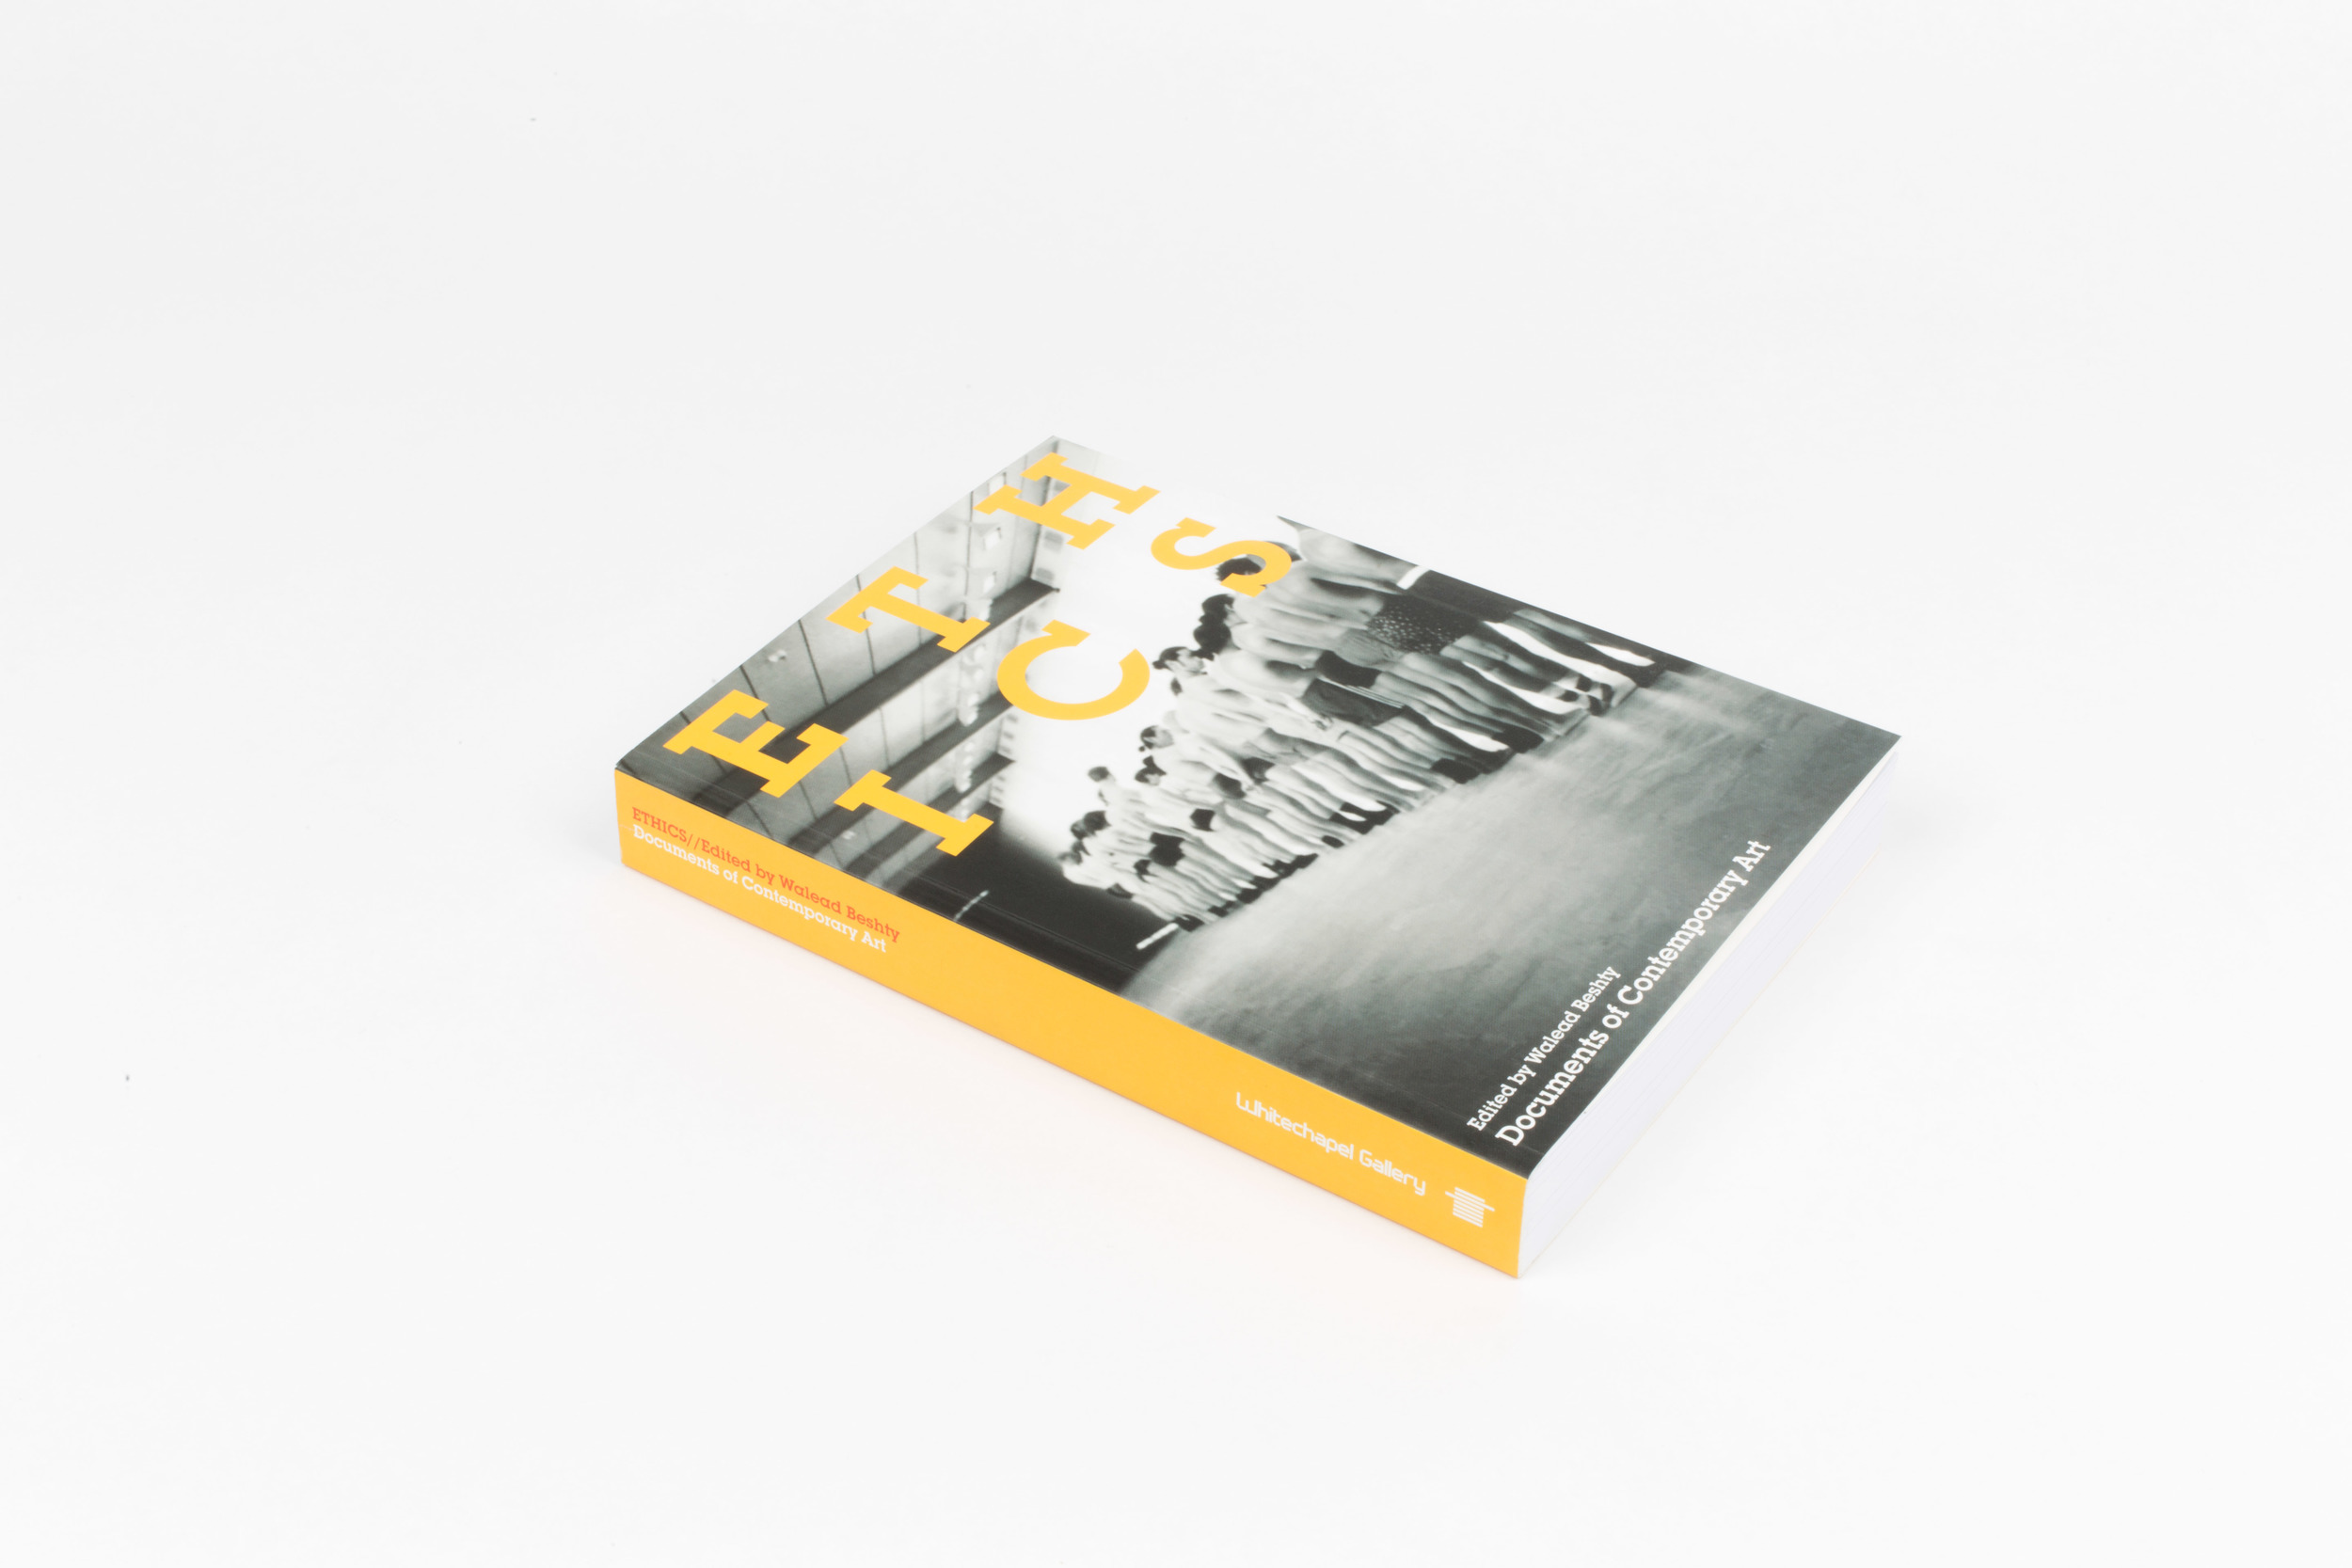 Walead Beshty, ed.,  Ethics,  Documents of Contemporary Art (Cambridge, MA and London: MIT Press and Whitechapel Gallery,2015).